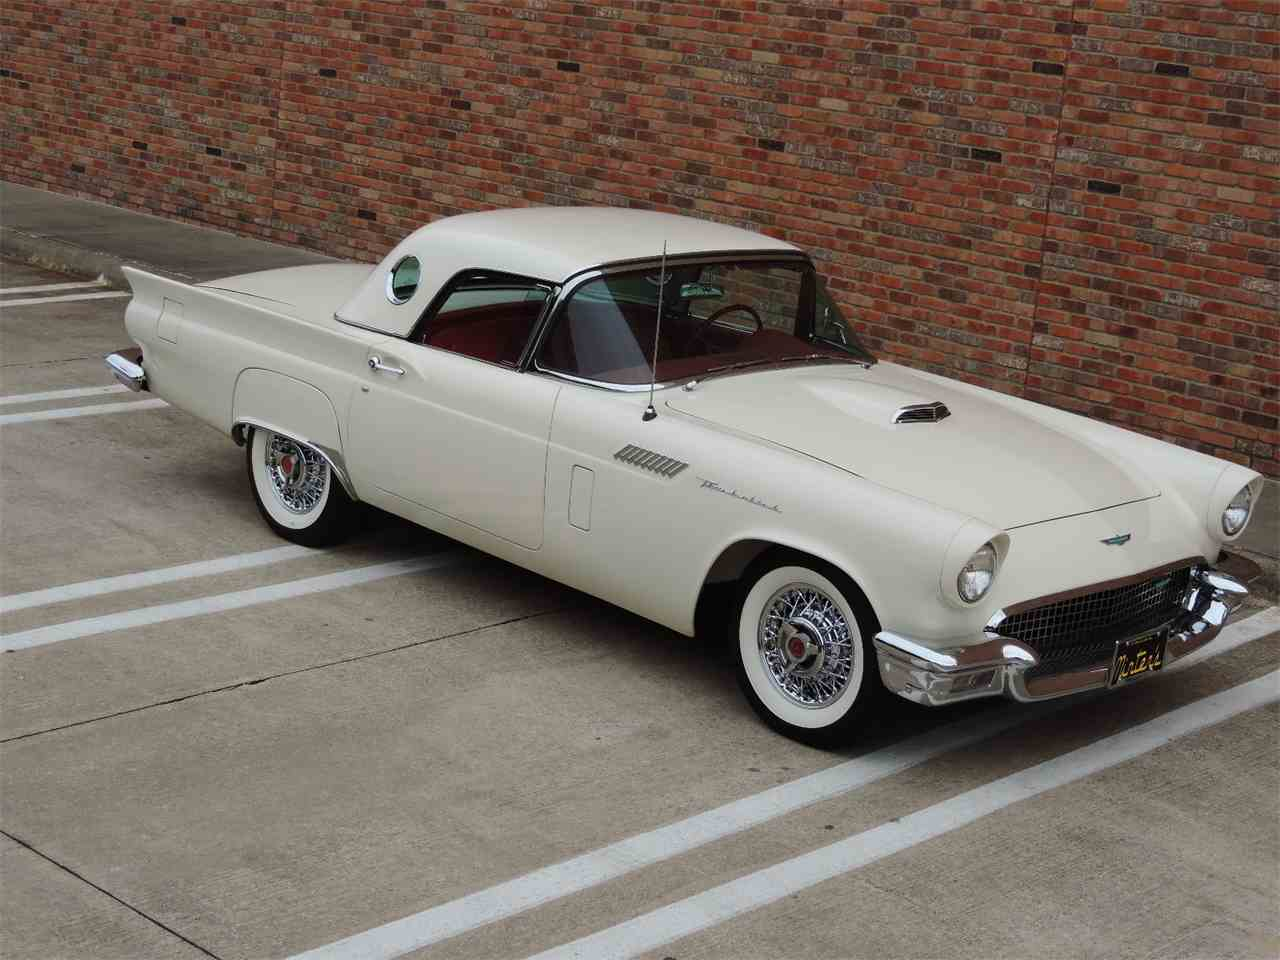 Large Picture of 1957 Ford Thunderbird located in Texas - $79,500.00 - MD3N